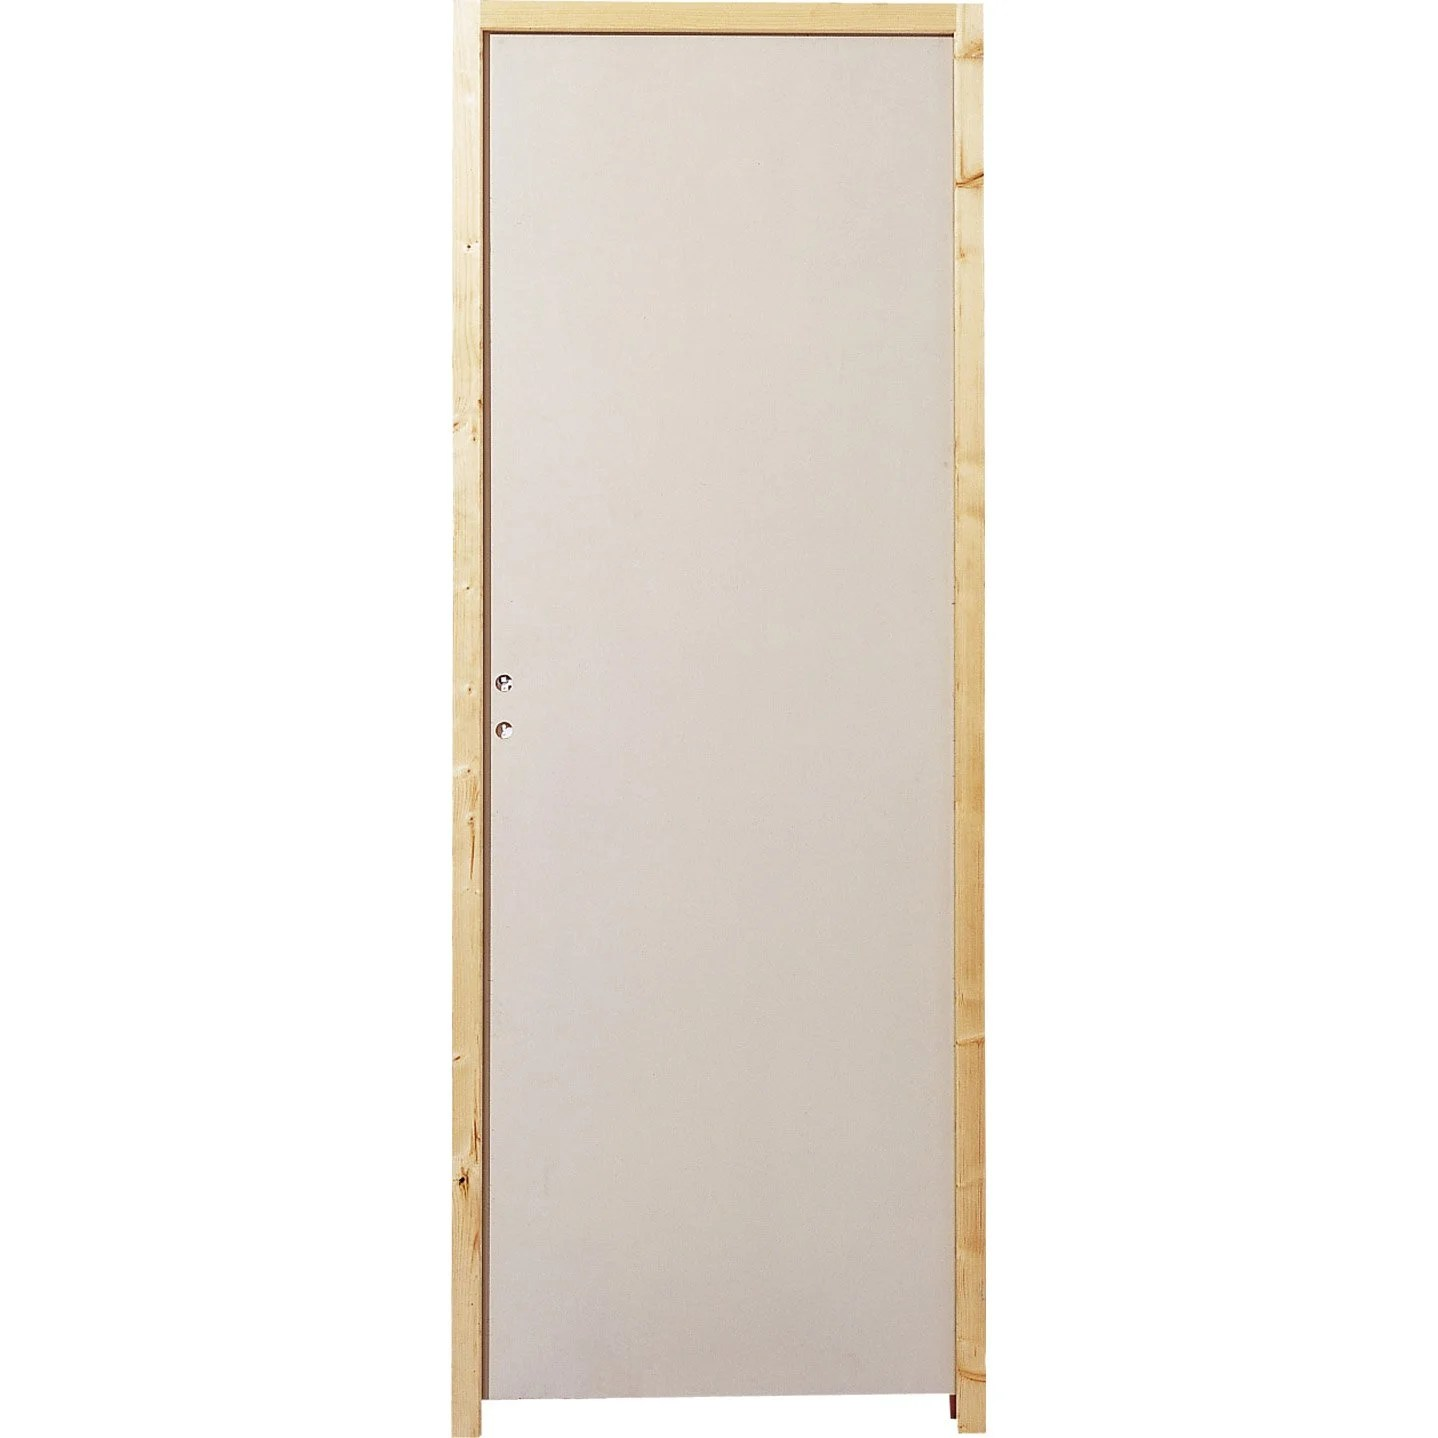 Dressing Point P Bloc Porte Acoustique Isoplane Plénitude H 204 X L 73 Cm